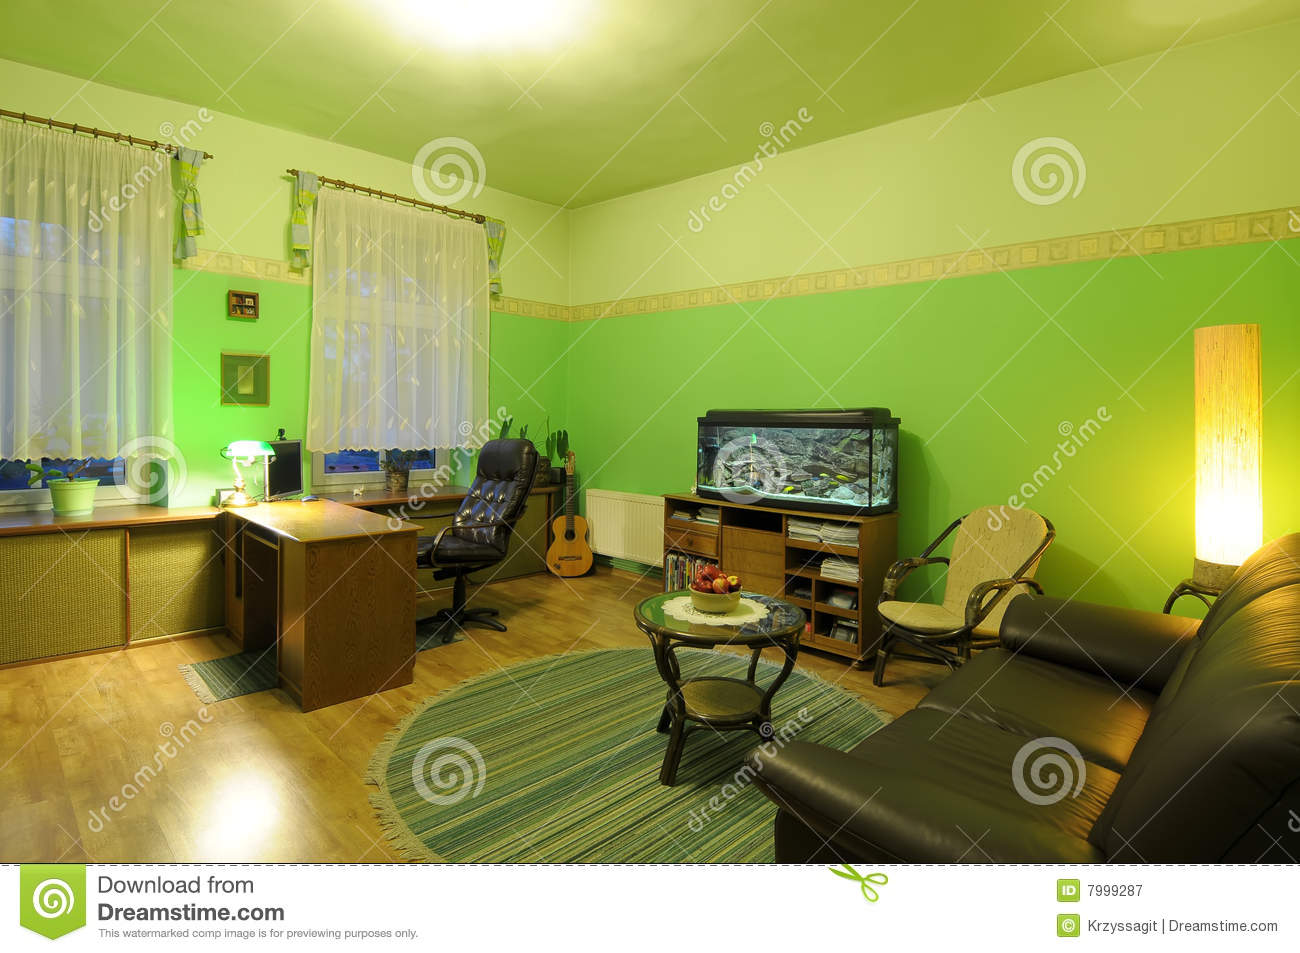 Lime living room royalty free stock photography image 7999287 for Lime green living room wallpaper